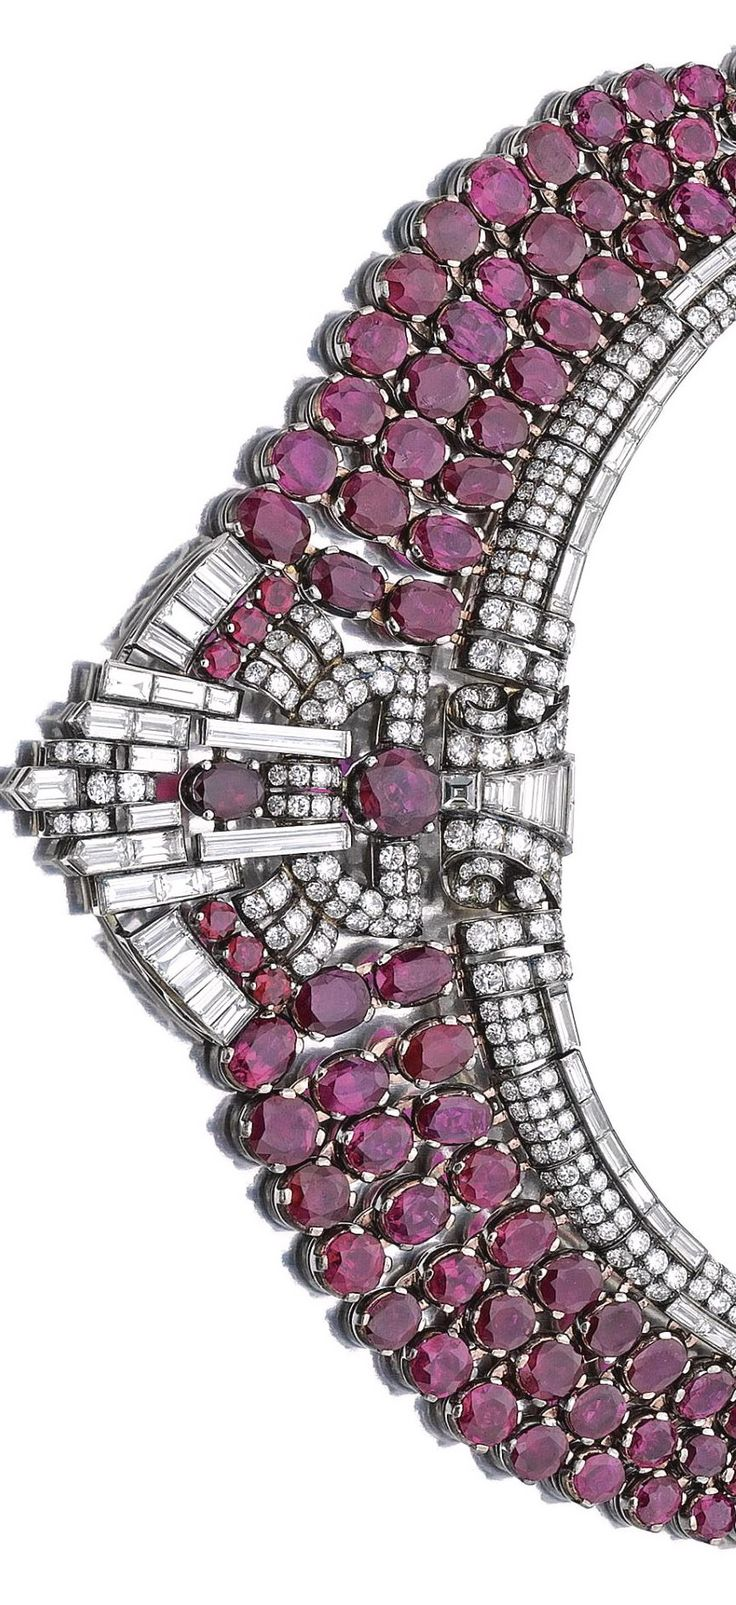 Ruby and diamond necklace, late 1930s.The necklace set with circular-, single-cut and baguette diamonds, suspending articulated oval ruby fringes, to the stylised scroll motifs, length approximately 385mm. | © 2014 Sotheby's